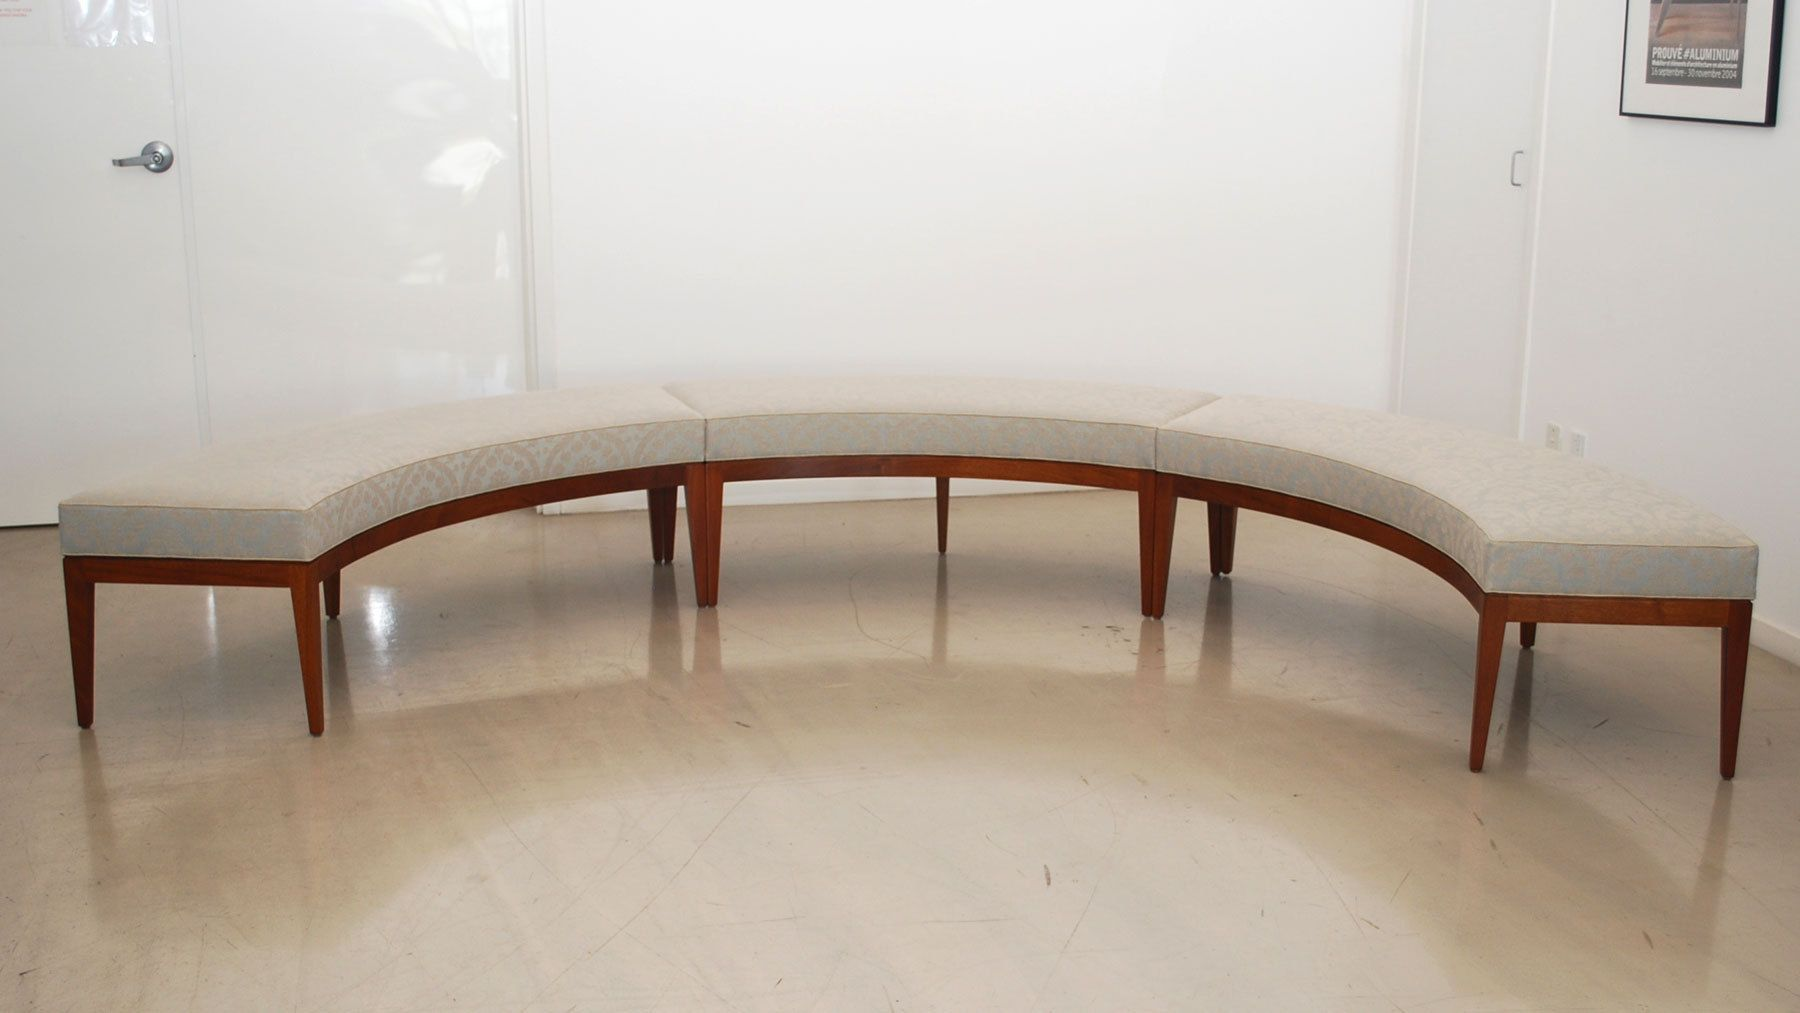 Custom curved window bench custom beds benches curved dining bench